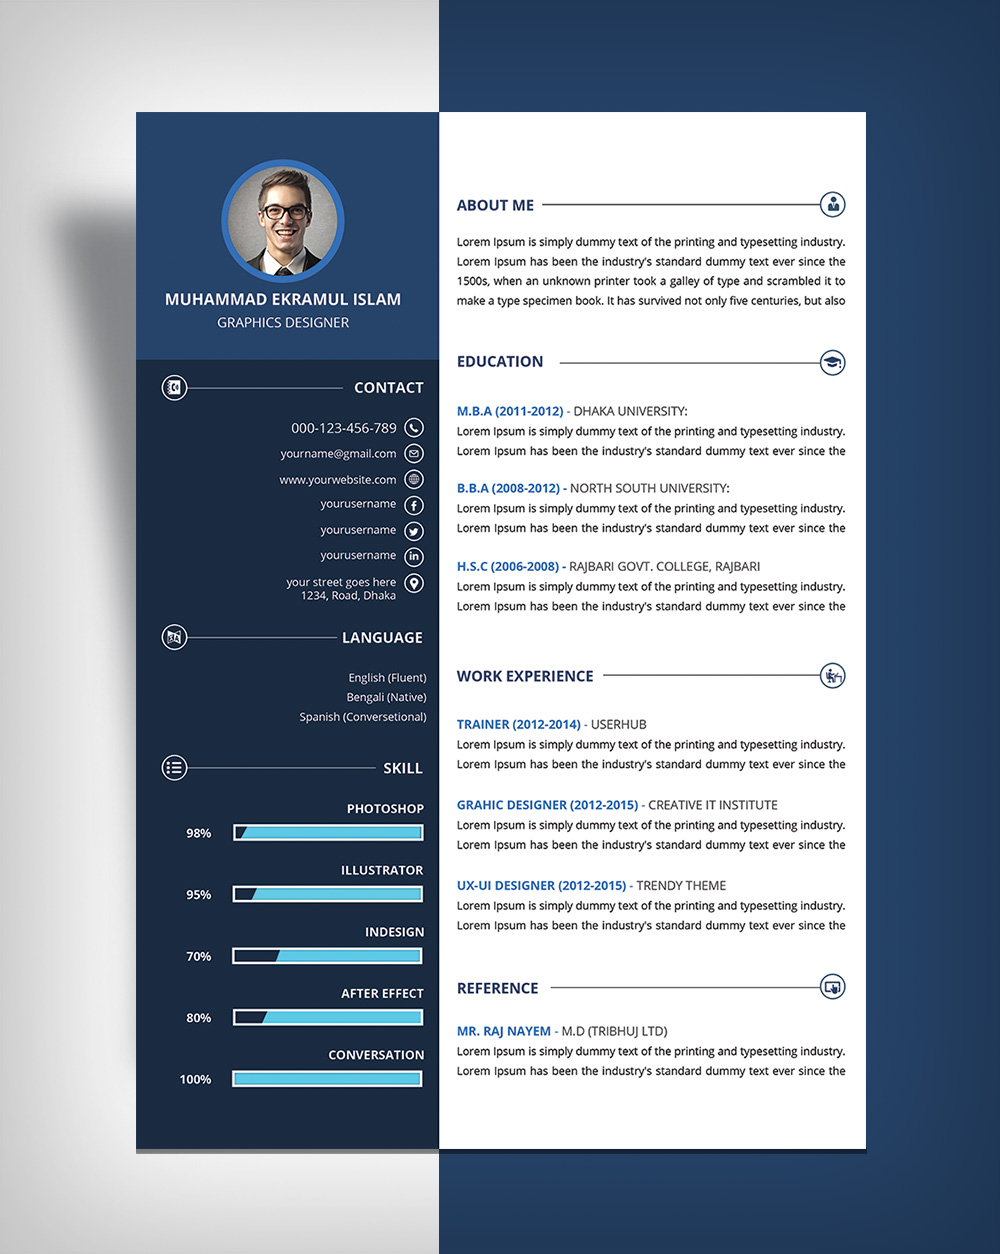 Free Beautiful Resume (CV) Design Template PSD File - Good Resume